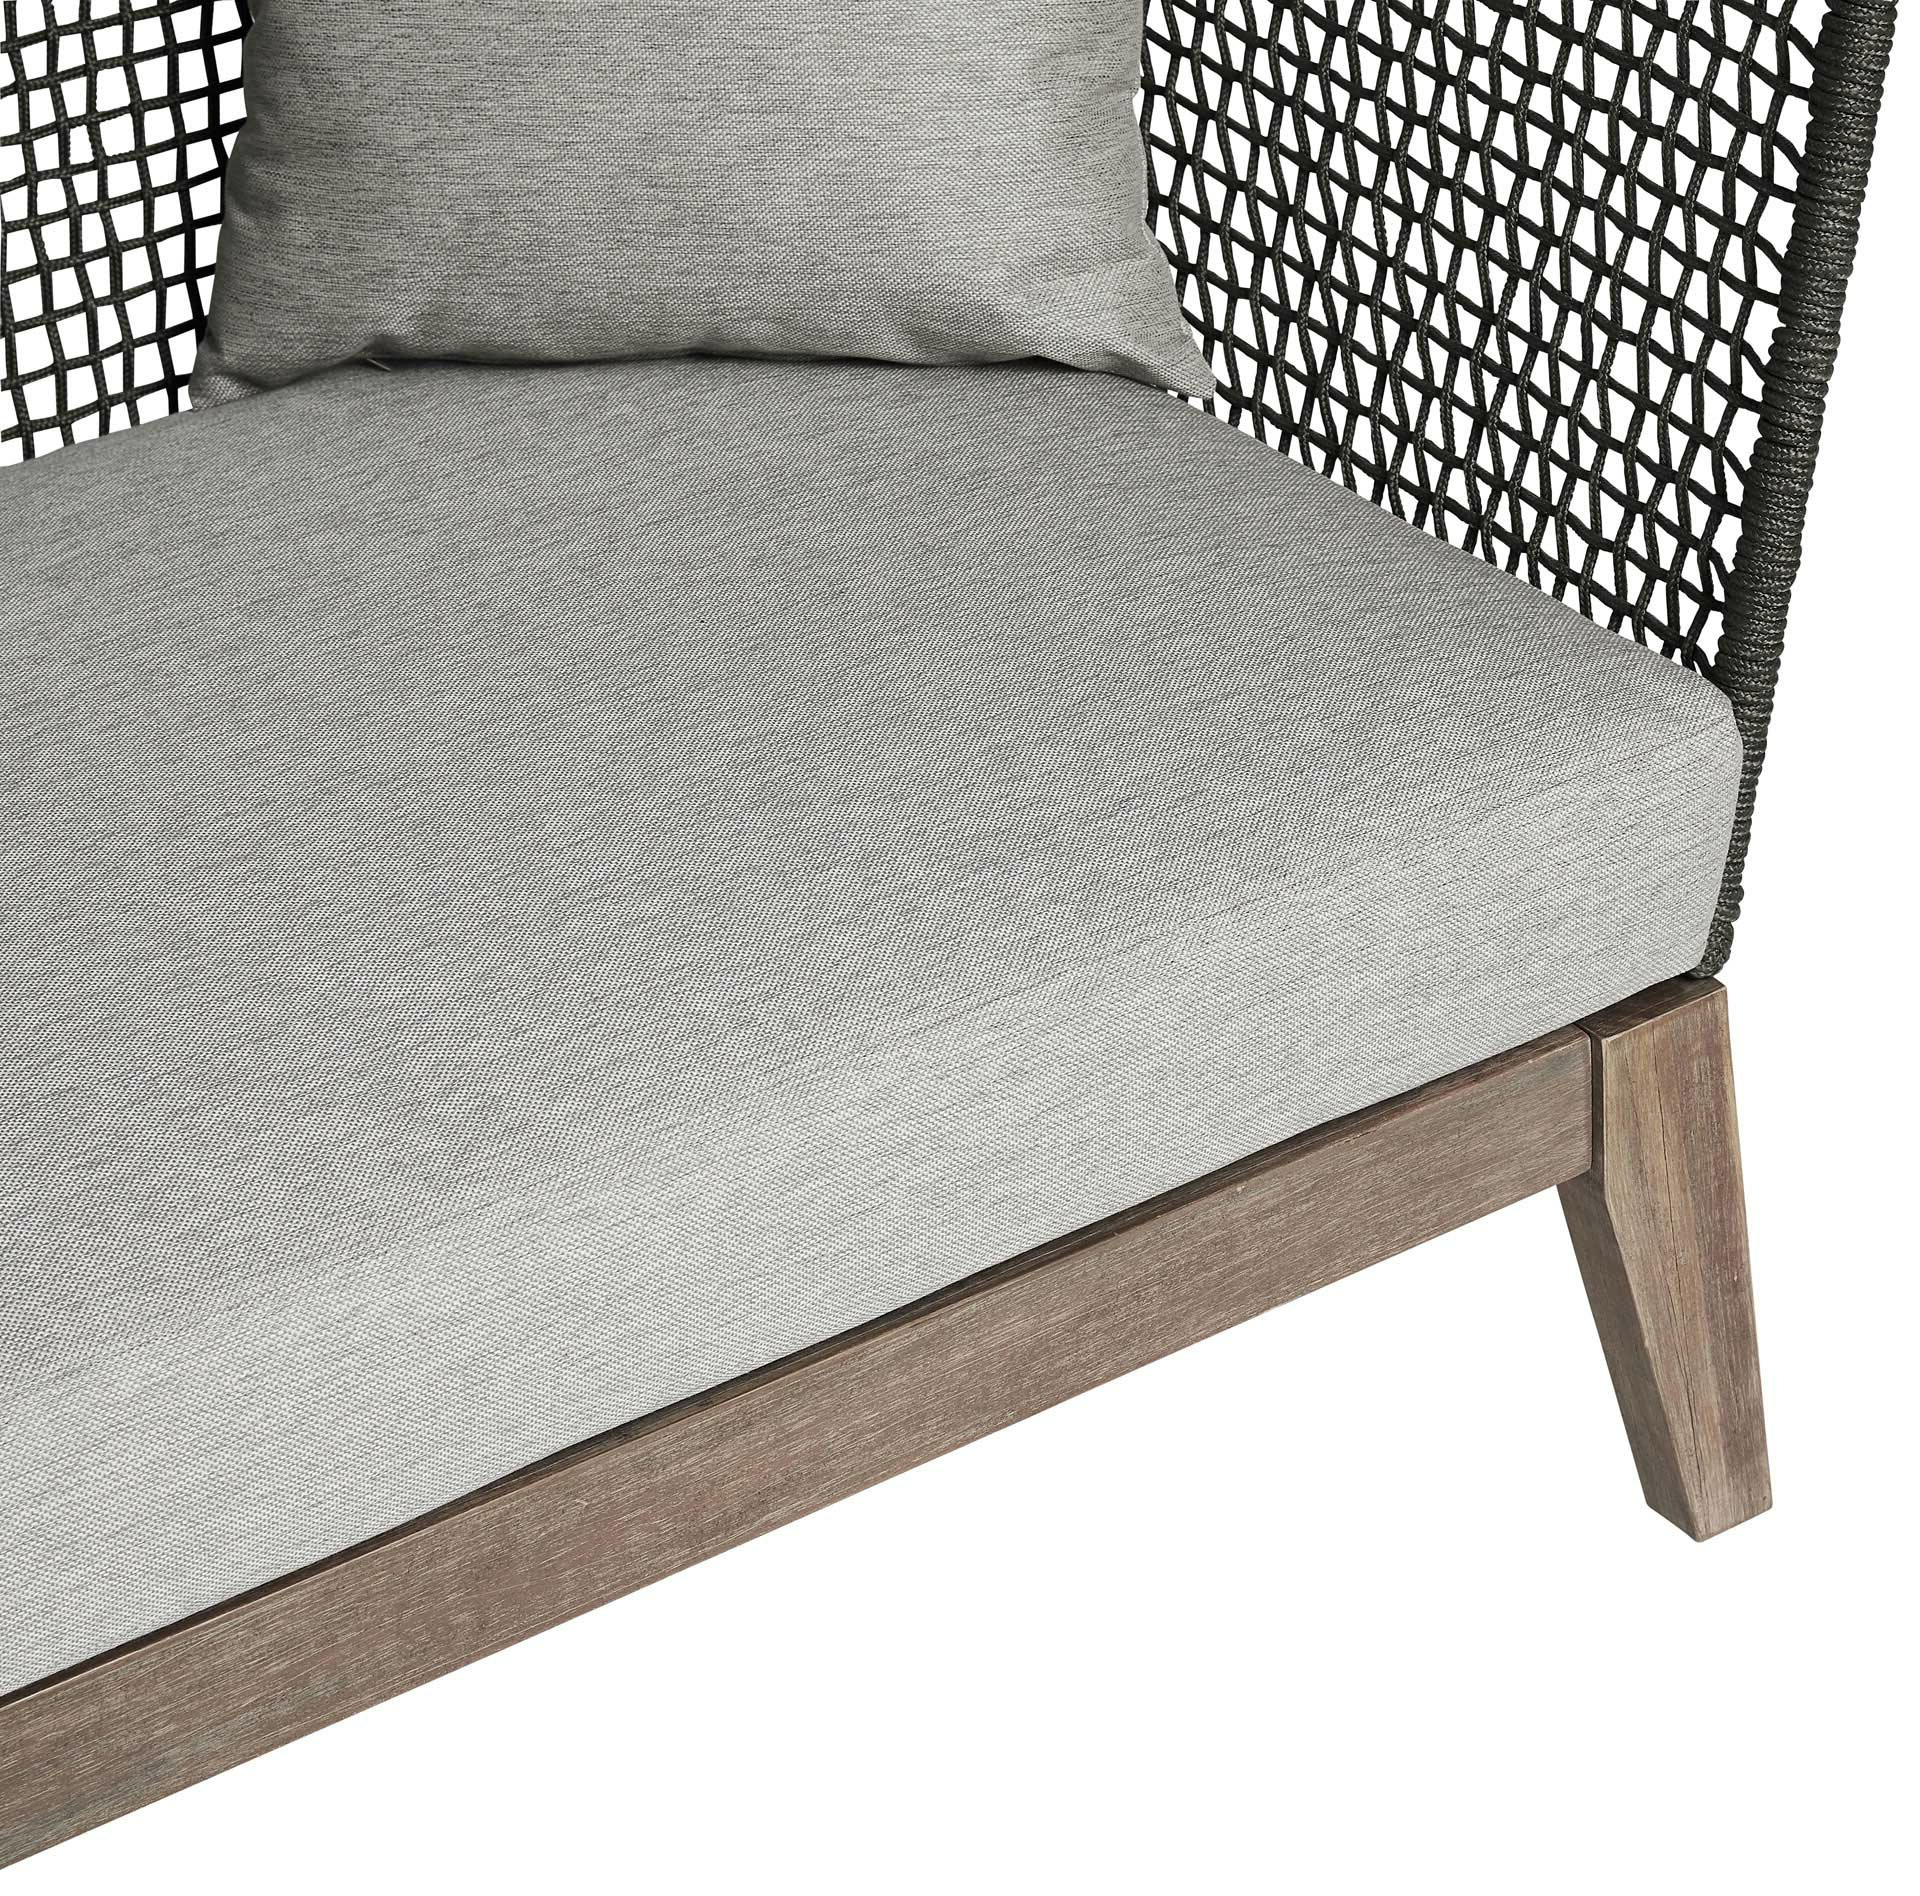 Netta Patio Sofa With Cushion Intended For Famous Jamilla Teak Patio Sofas With Cushion (View 18 of 25)